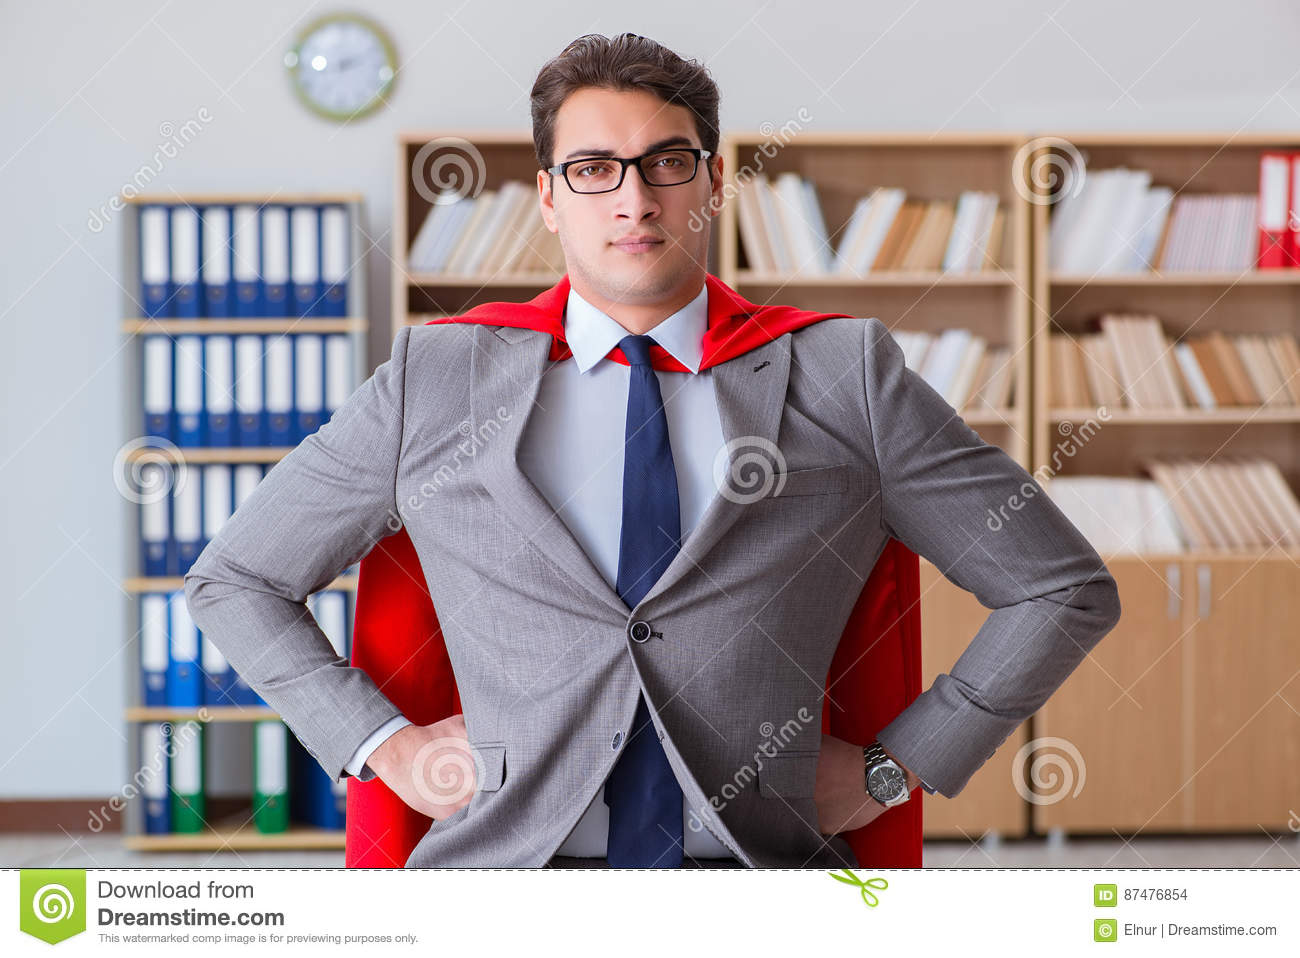 The superhero businessman working in the office